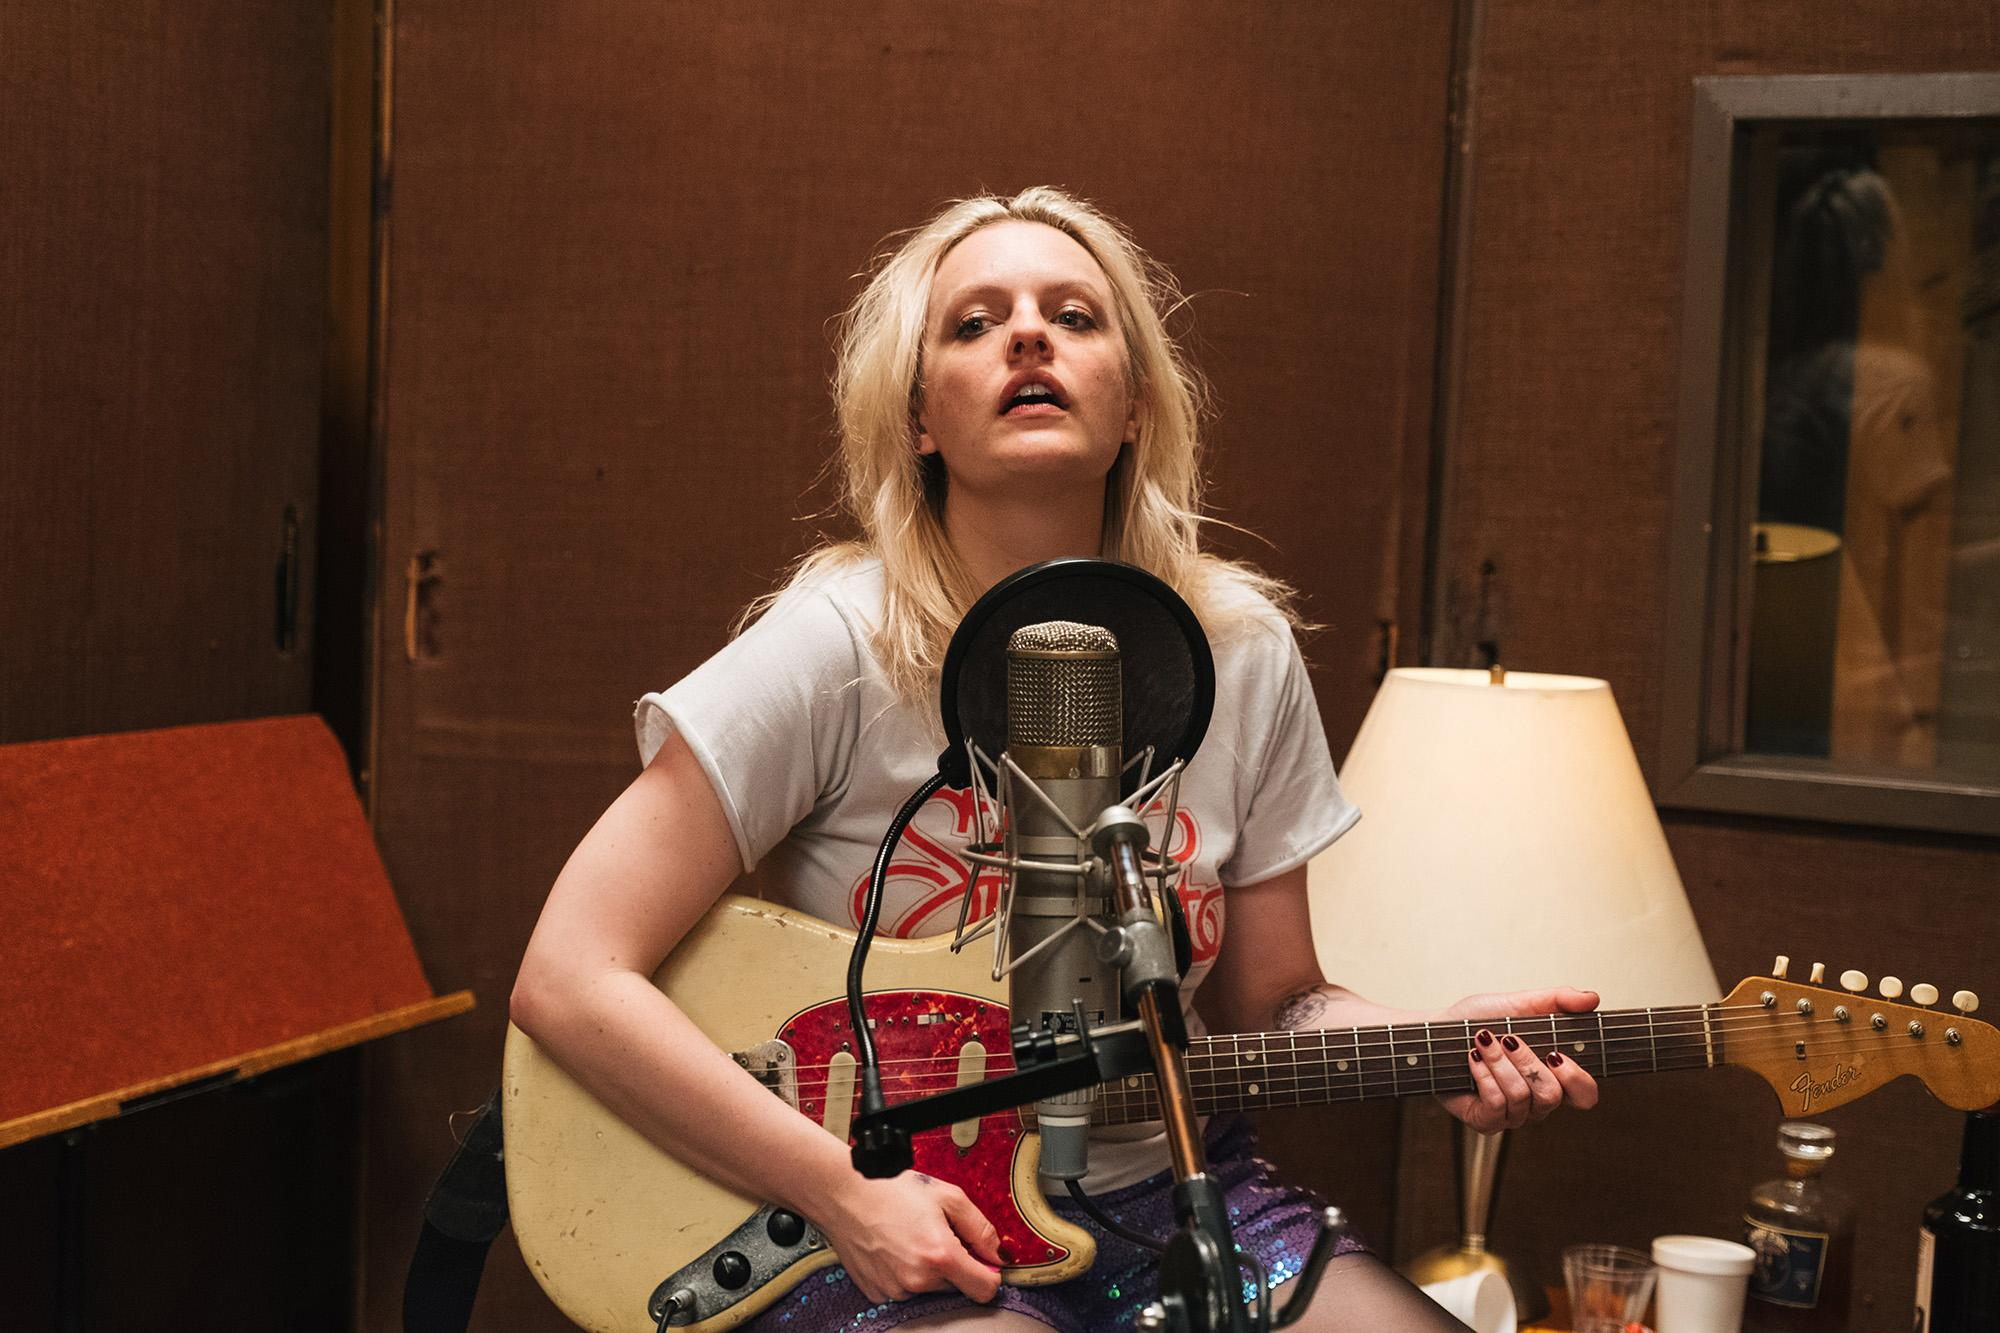 'Her Smell' showcases an astonishing performance from Elisabeth Moss